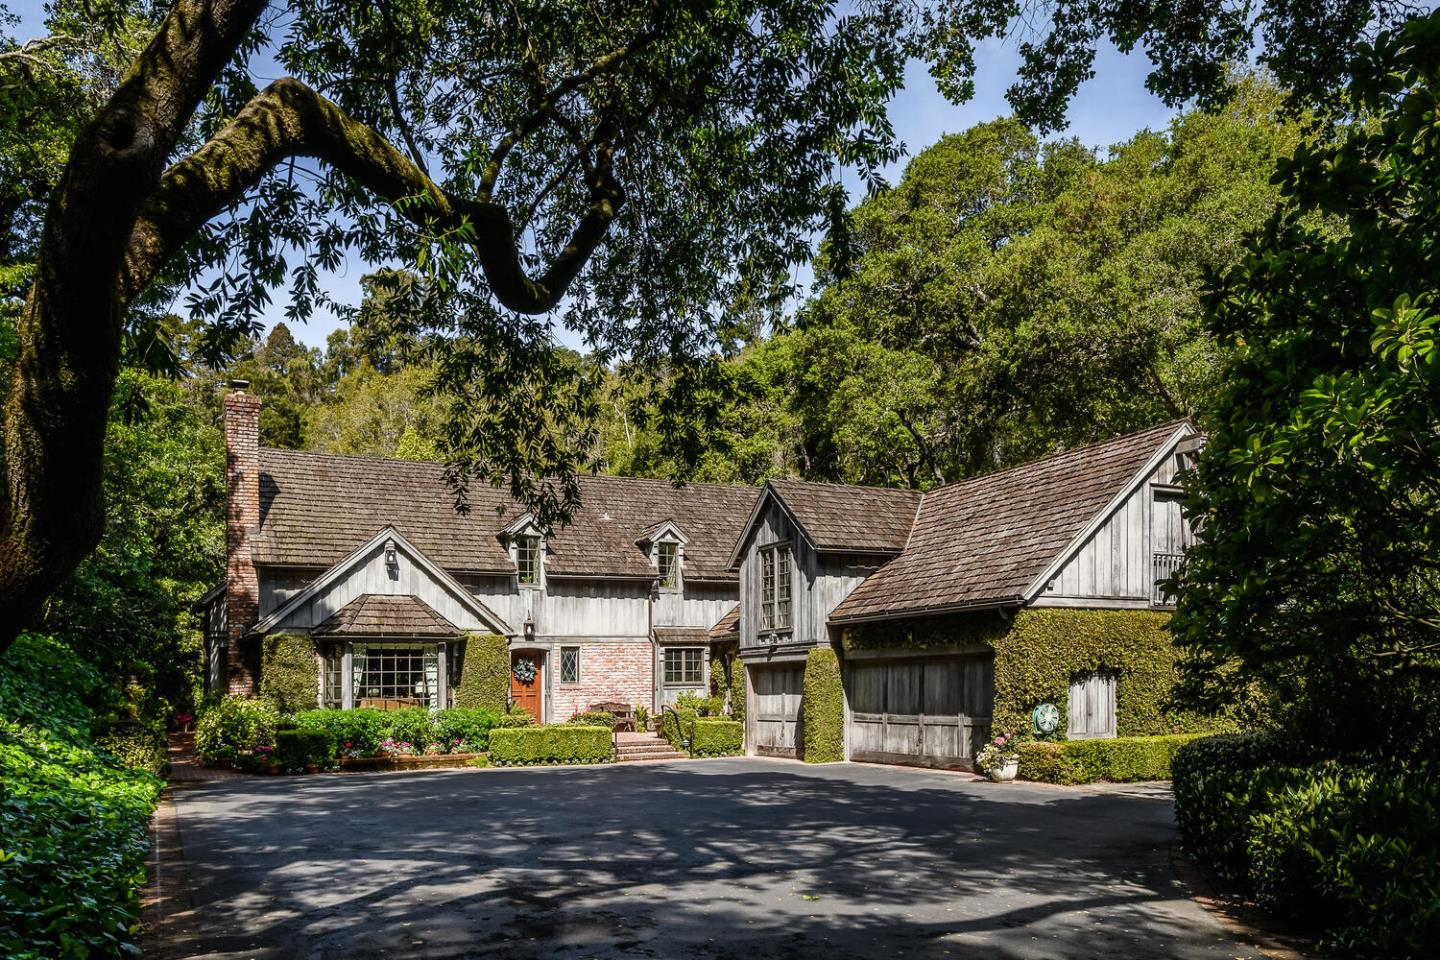 Rare and wonderfully private 3.4 acre classic estate with a tastefully updated 5,200 sf traditional home amid a vibrant landscape of Redwoods, heritage Oaks, giant Bay Laurels in the exclusive 2-acre area of Hillsborough. This bucolic refuge is a fabulous example of the timeless beauty of the Bay Area foothills with a contemporary 6BD/5.5BA English Cottage style home offering a superb layout and amenities including: quintessential indoor/outdoor living, spacious rooms with elegant custom tile and millwork, cherrywood library, chefs kitchen, luxury bathrooms, hand tiled hot tub, 3-car garage, and more. Primary suite with garden French doors and spa-like bath, 5 additional bedrooms; 3 en suites. Gracious family room and adjoining art room with vaulted open-beam ceilings, formal living and dining rooms. Nestled along an exclusive winding street, this Hillsborough gem is just minutes from shopping, award-winning dining and some of the Peninsulas best open space preserves.